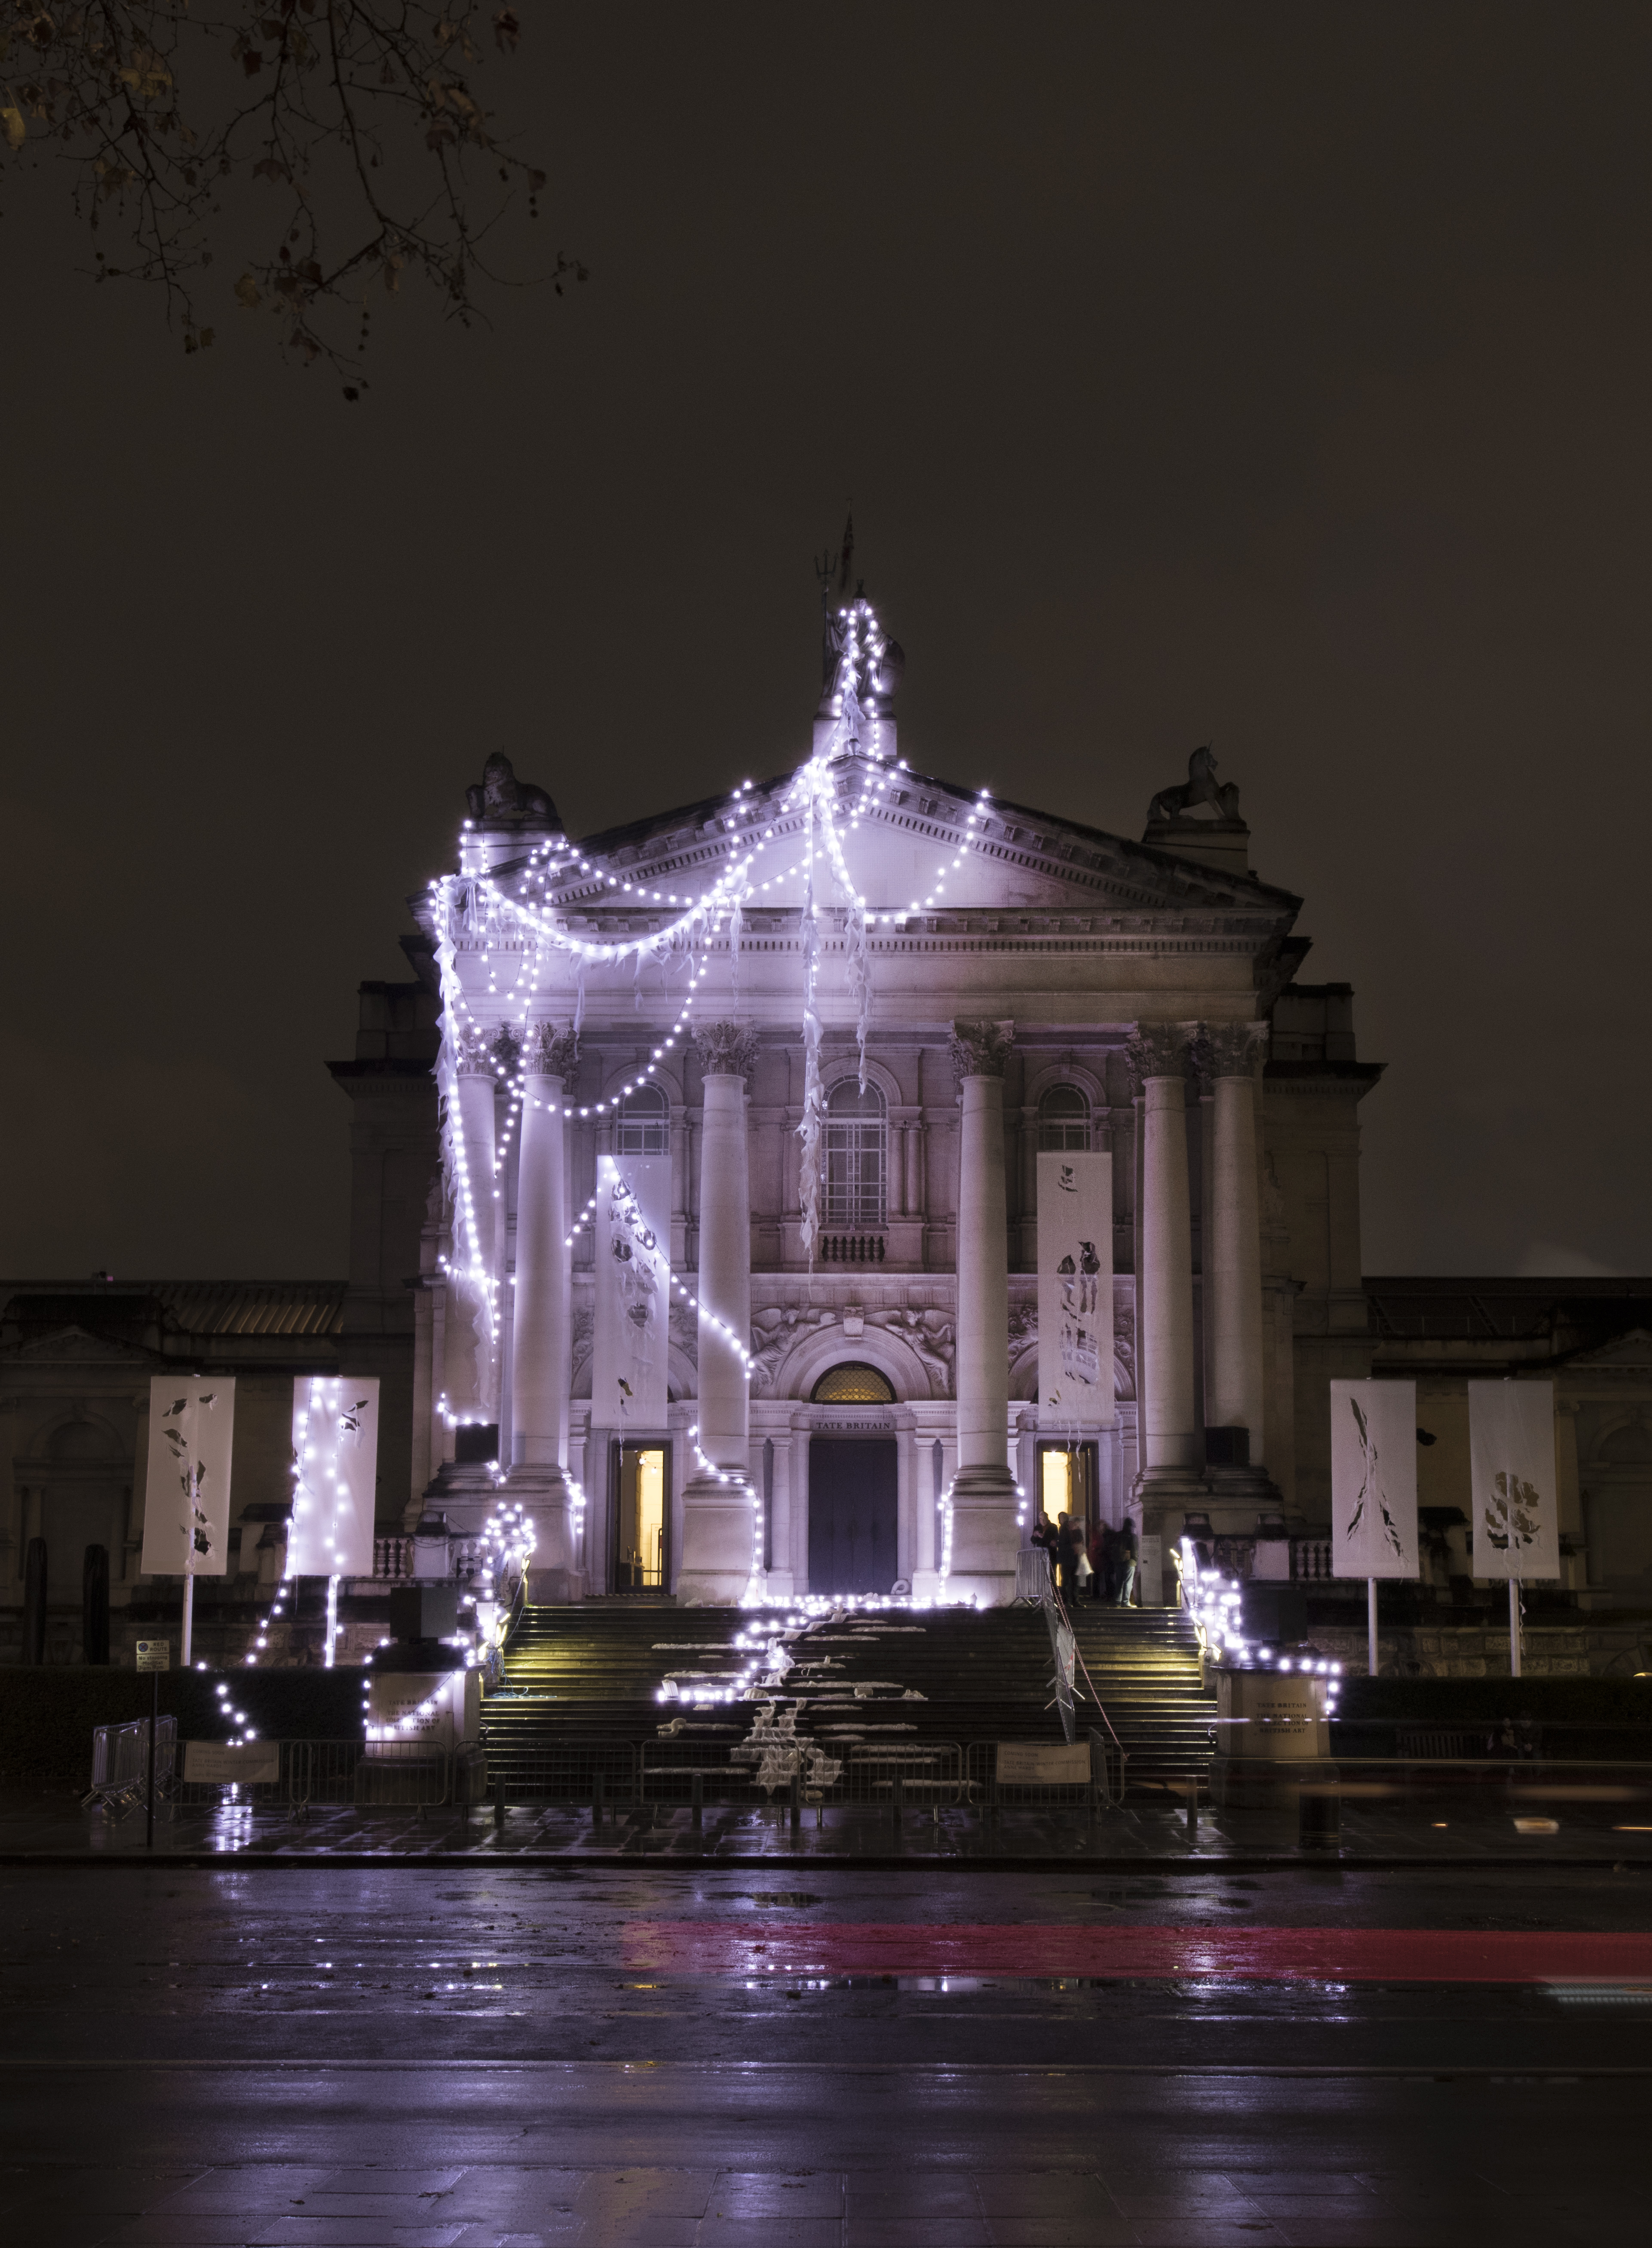 Tate Britain's Winter Commission